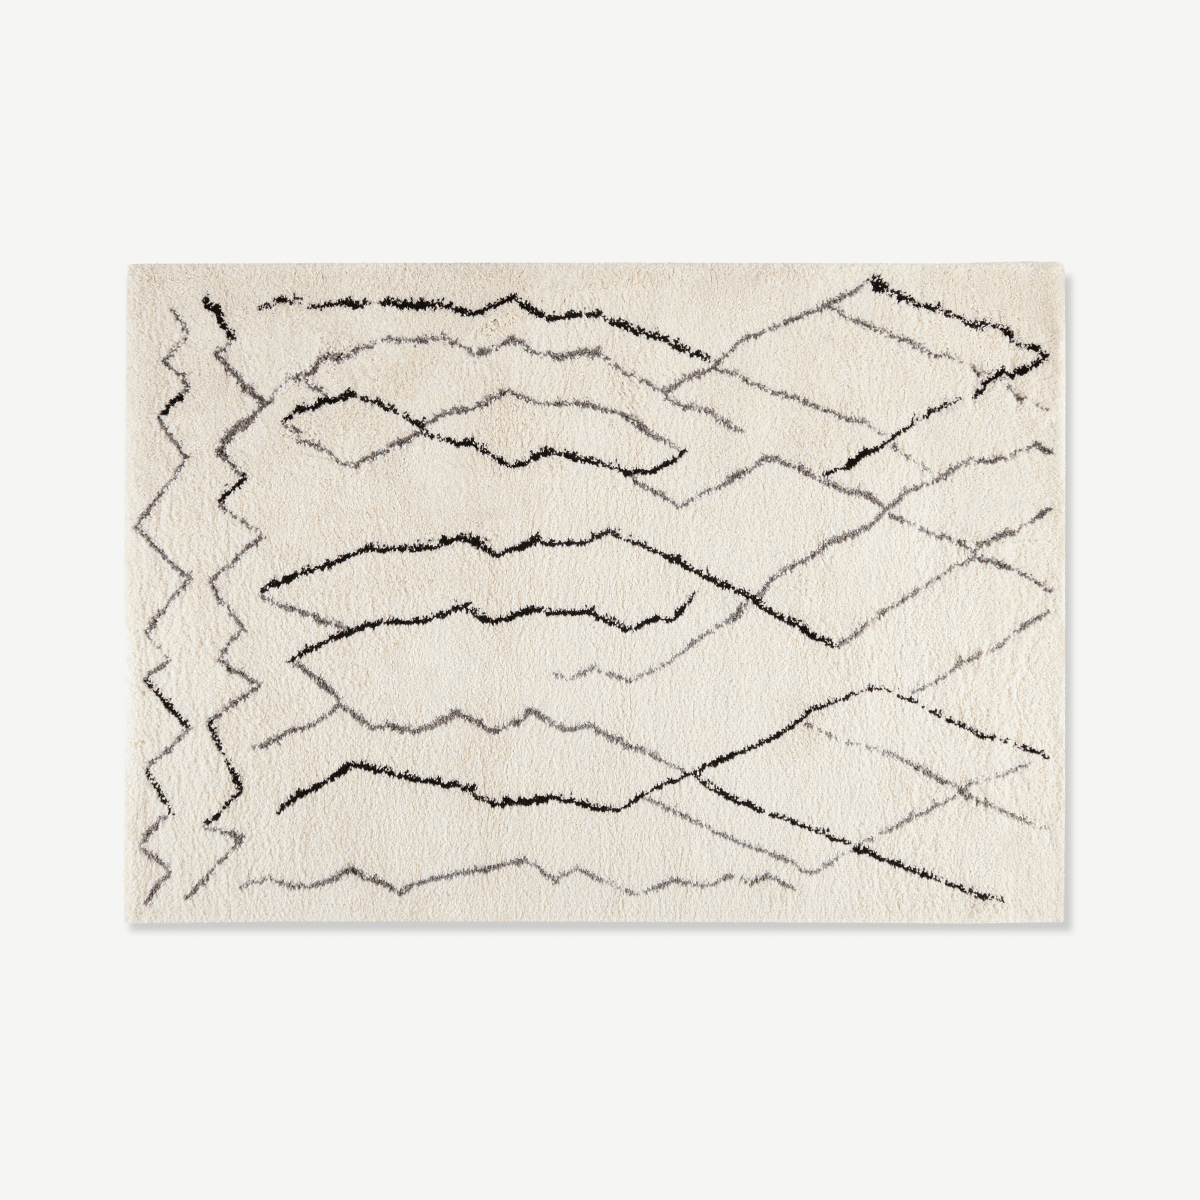 Cecily-Pile-Rug-Extra-Large-200-x-290cm-Off-White-Grey_26932437417.jpg